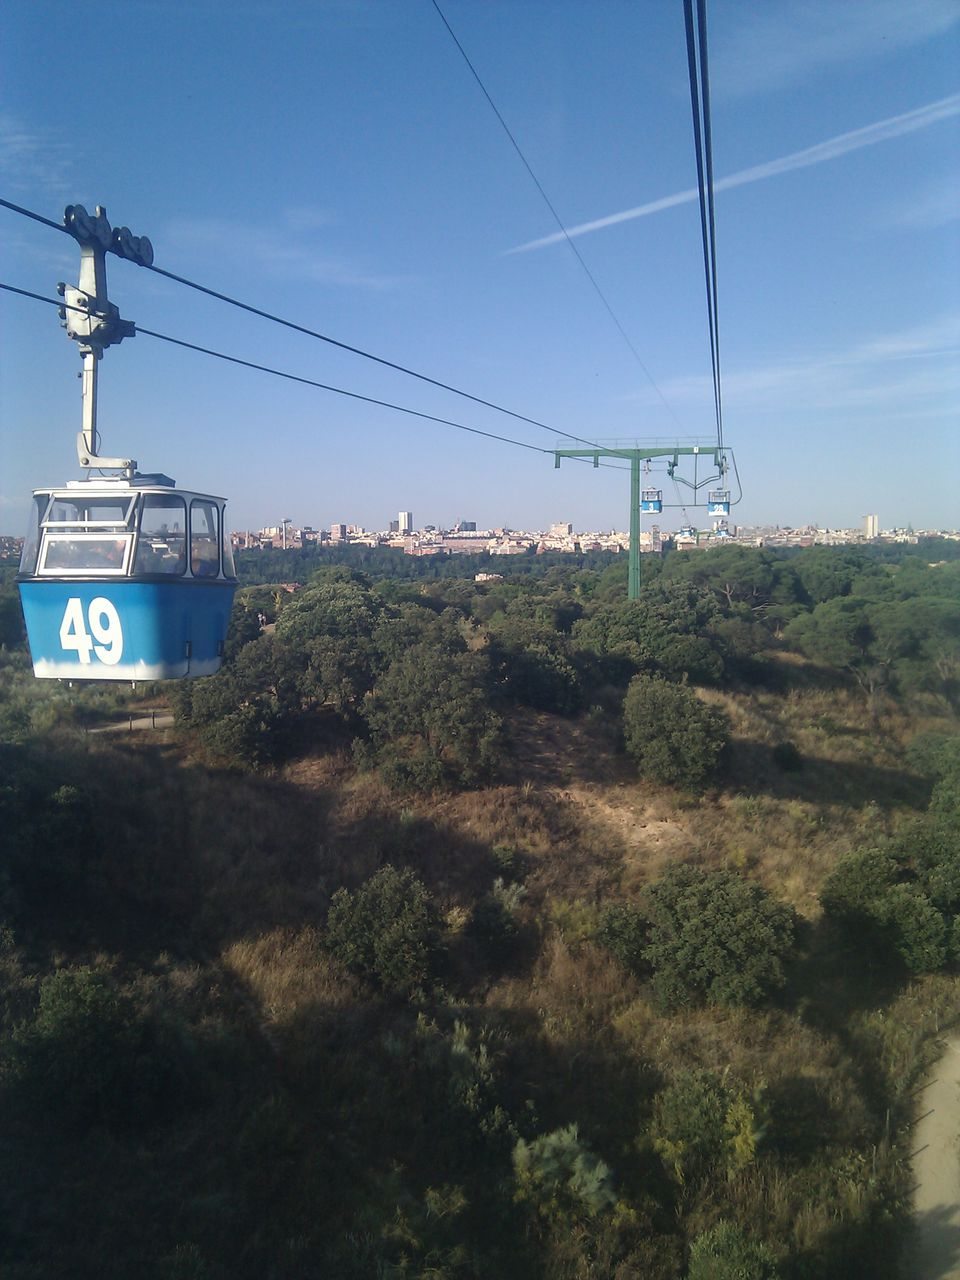 Teleferico (Cable Car) in Madrid